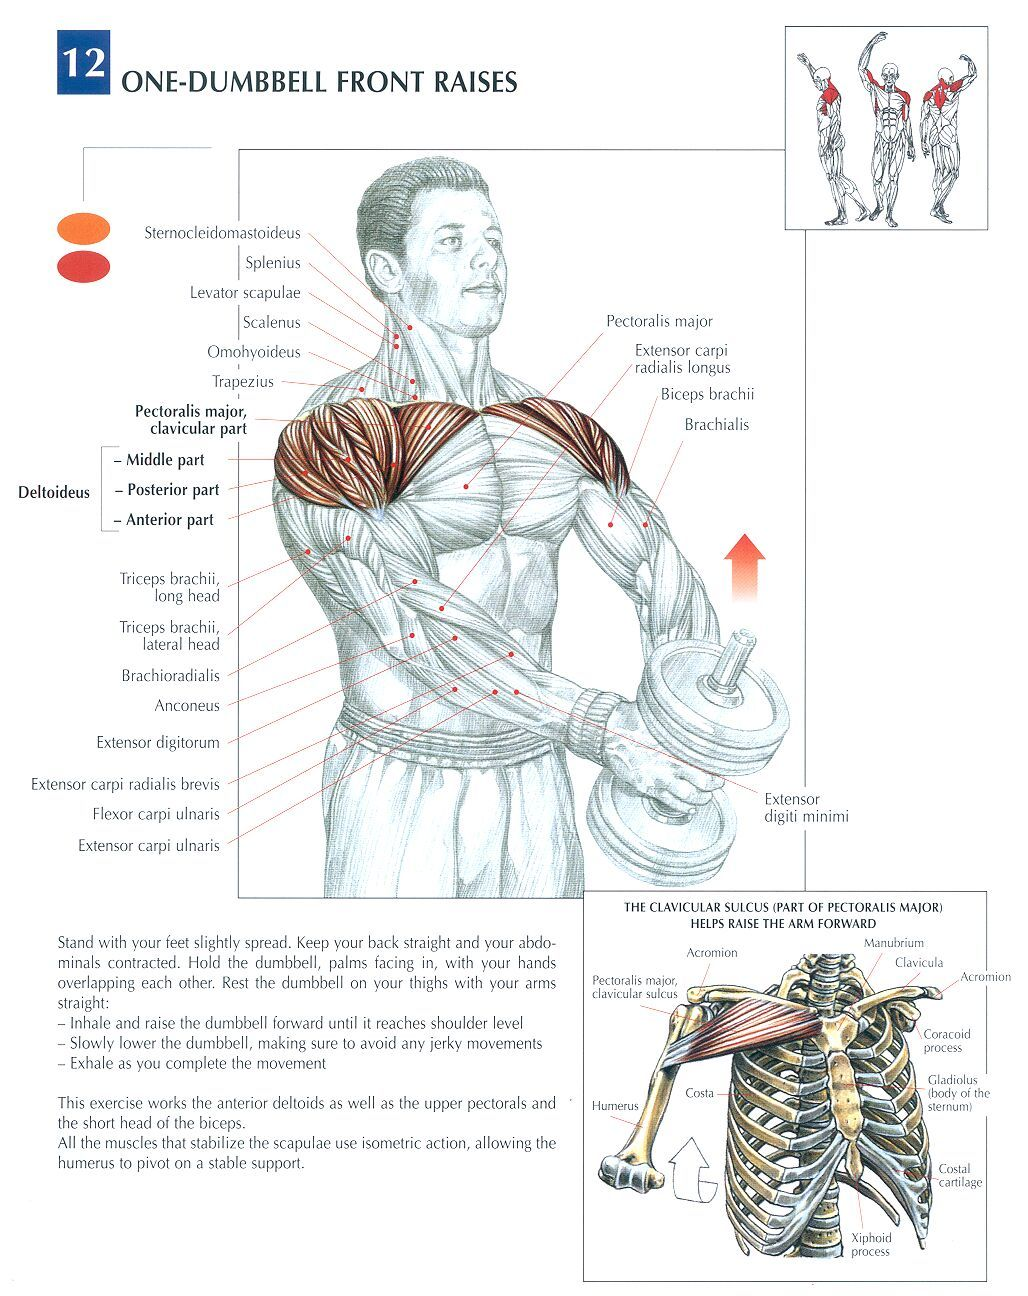 The anatomy of lifting (lots of pics) - Page 2 - Bodybuilding.com ...